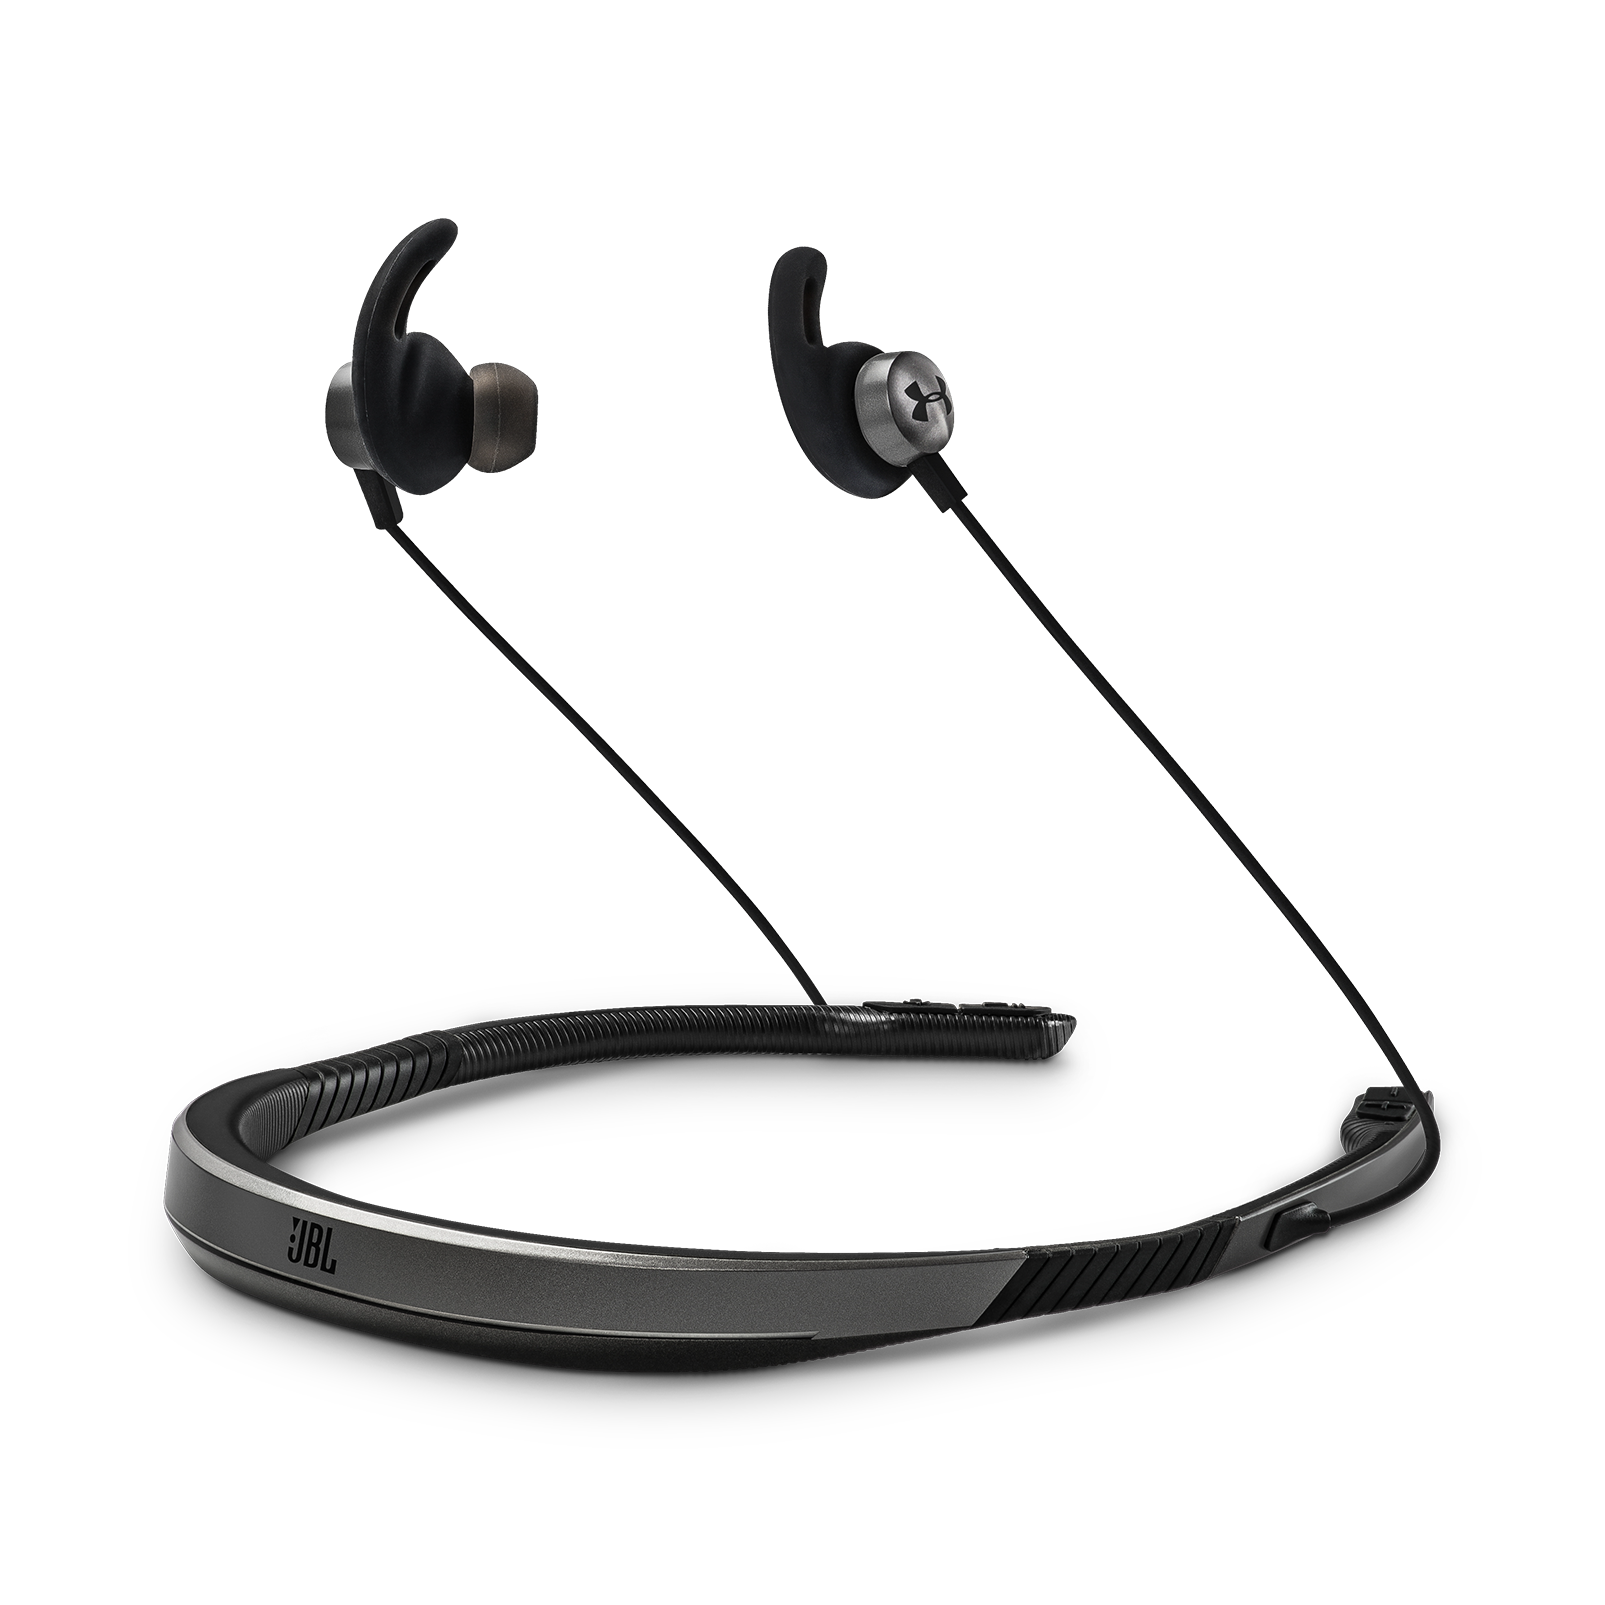 Ua Sport Wireless Flex Engineered By Jbl Neckband Isolation Audio Headphones Having On Volume Control Wiring